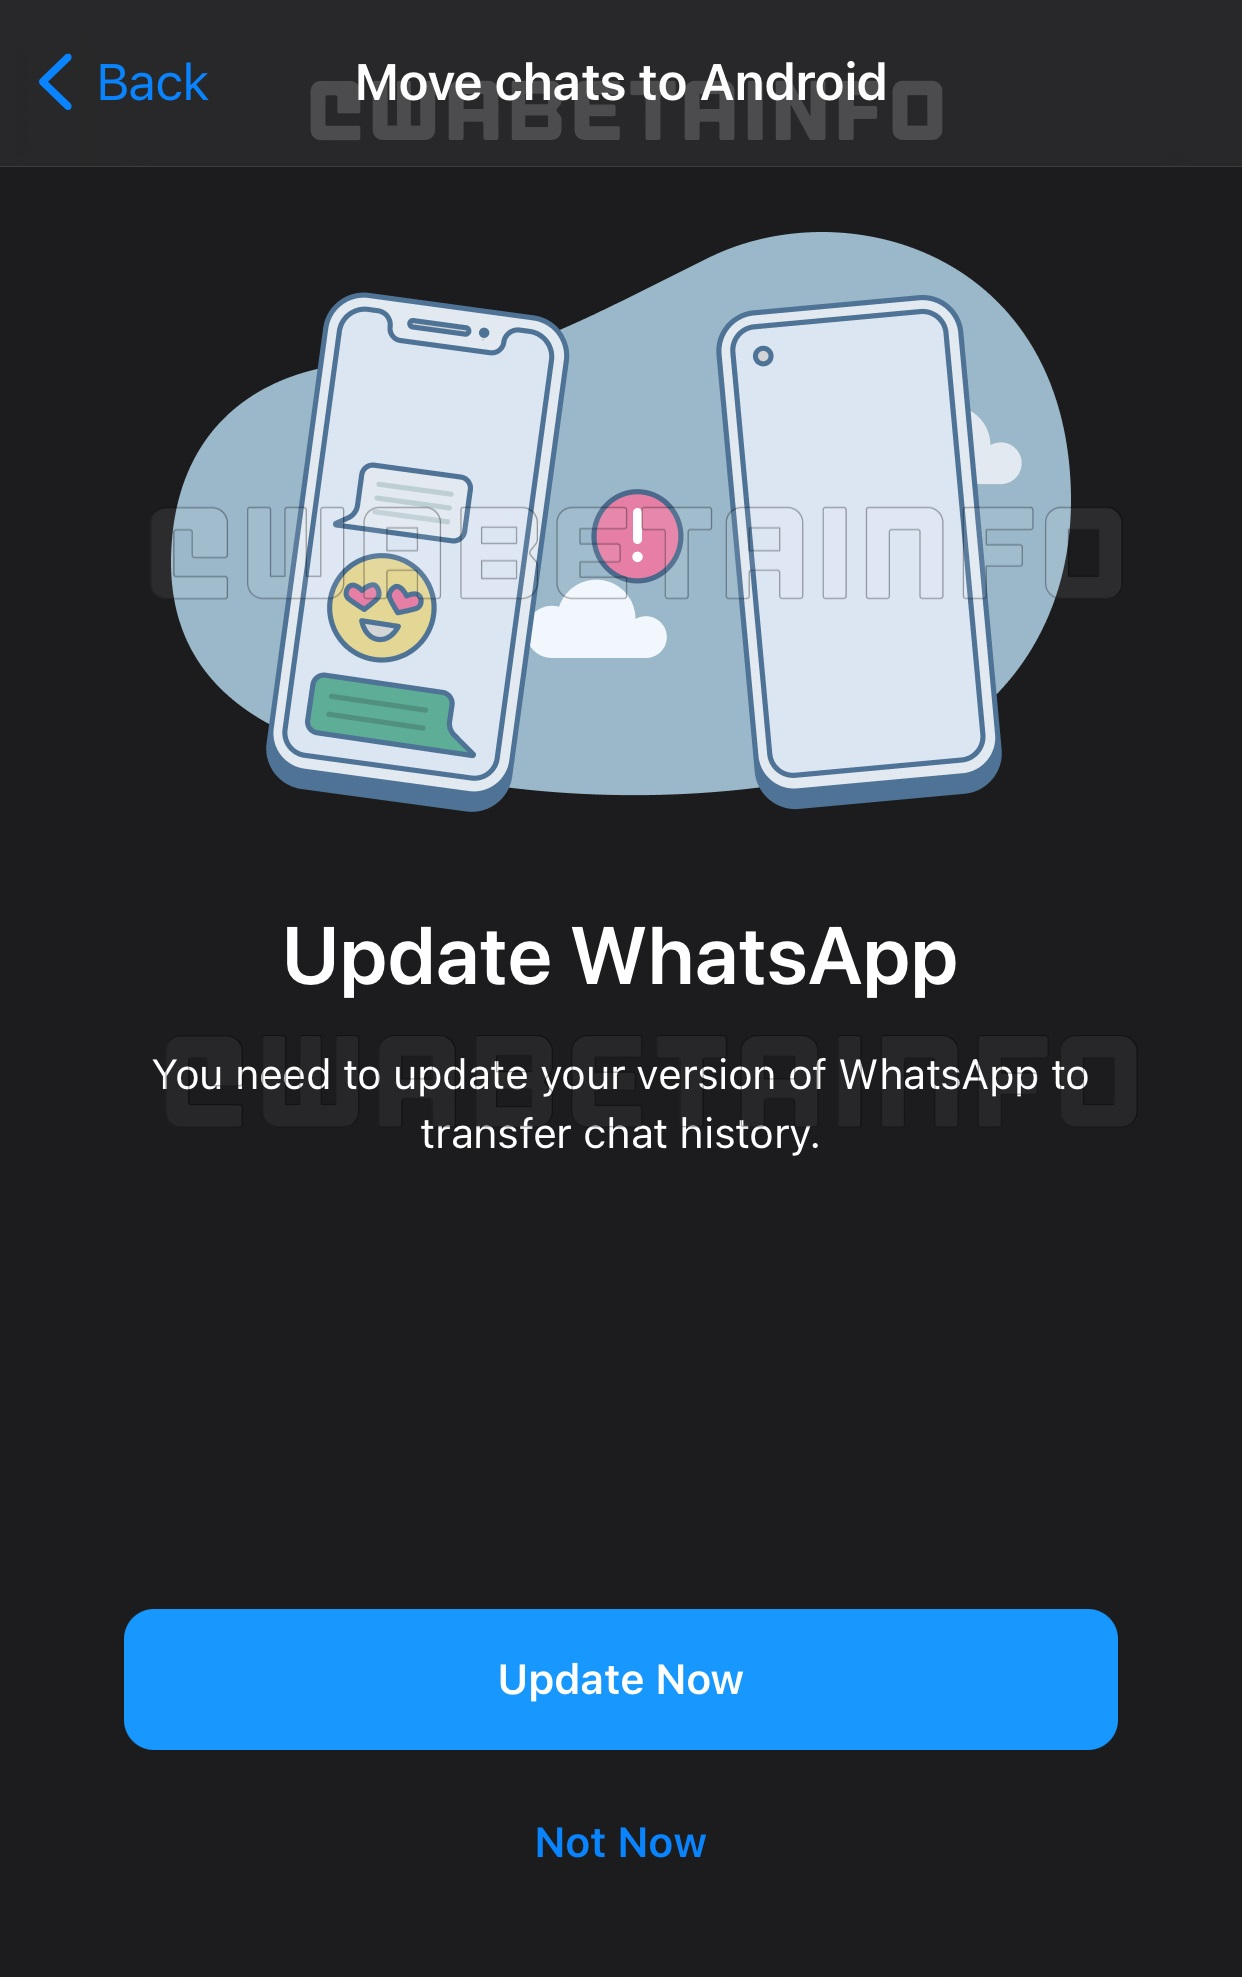 CHAT MIGRATION IOS